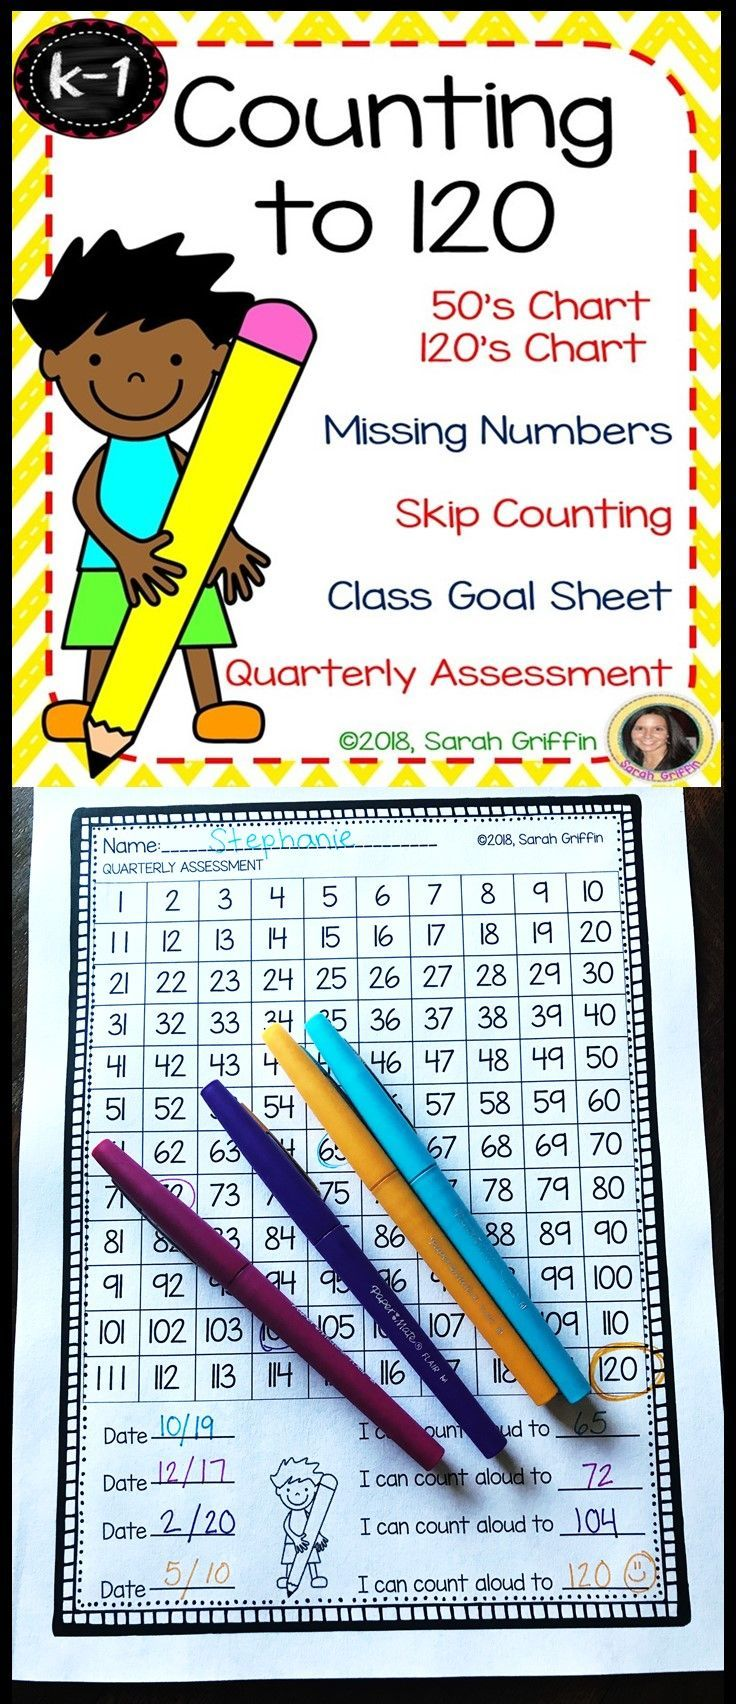 Counting To 120 Math Worksheets 120 Number Chart Tracing Numbers Missing Numbers Skip Countin Counting To 120 Kindergarten Skills Learning Worksheets [ 1704 x 736 Pixel ]